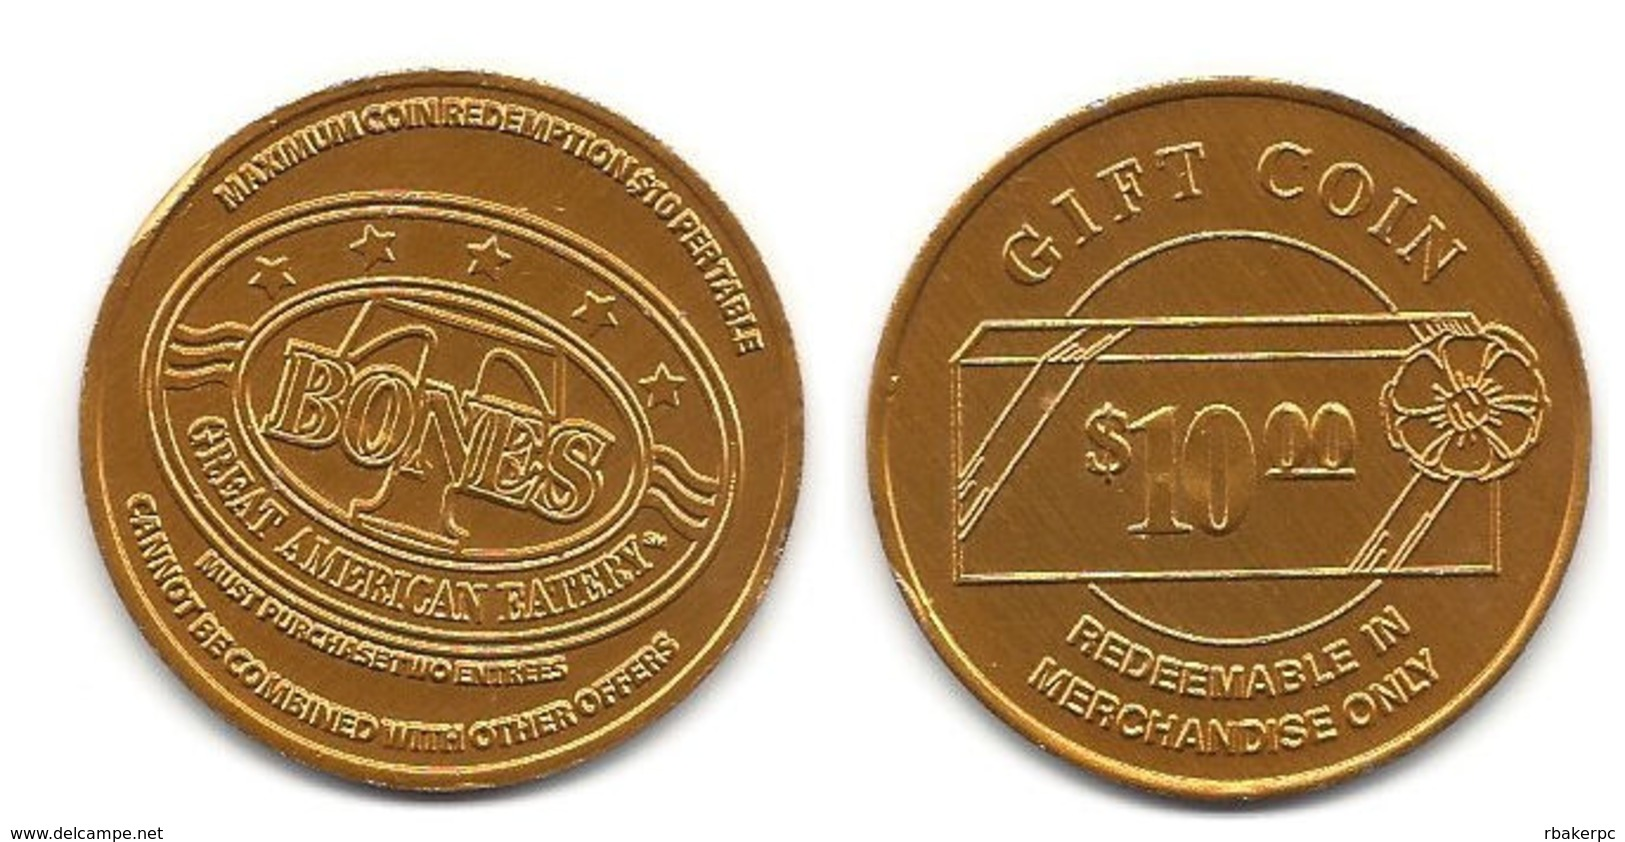 T Bones Great American Eatery $10 Gift Coin - USA